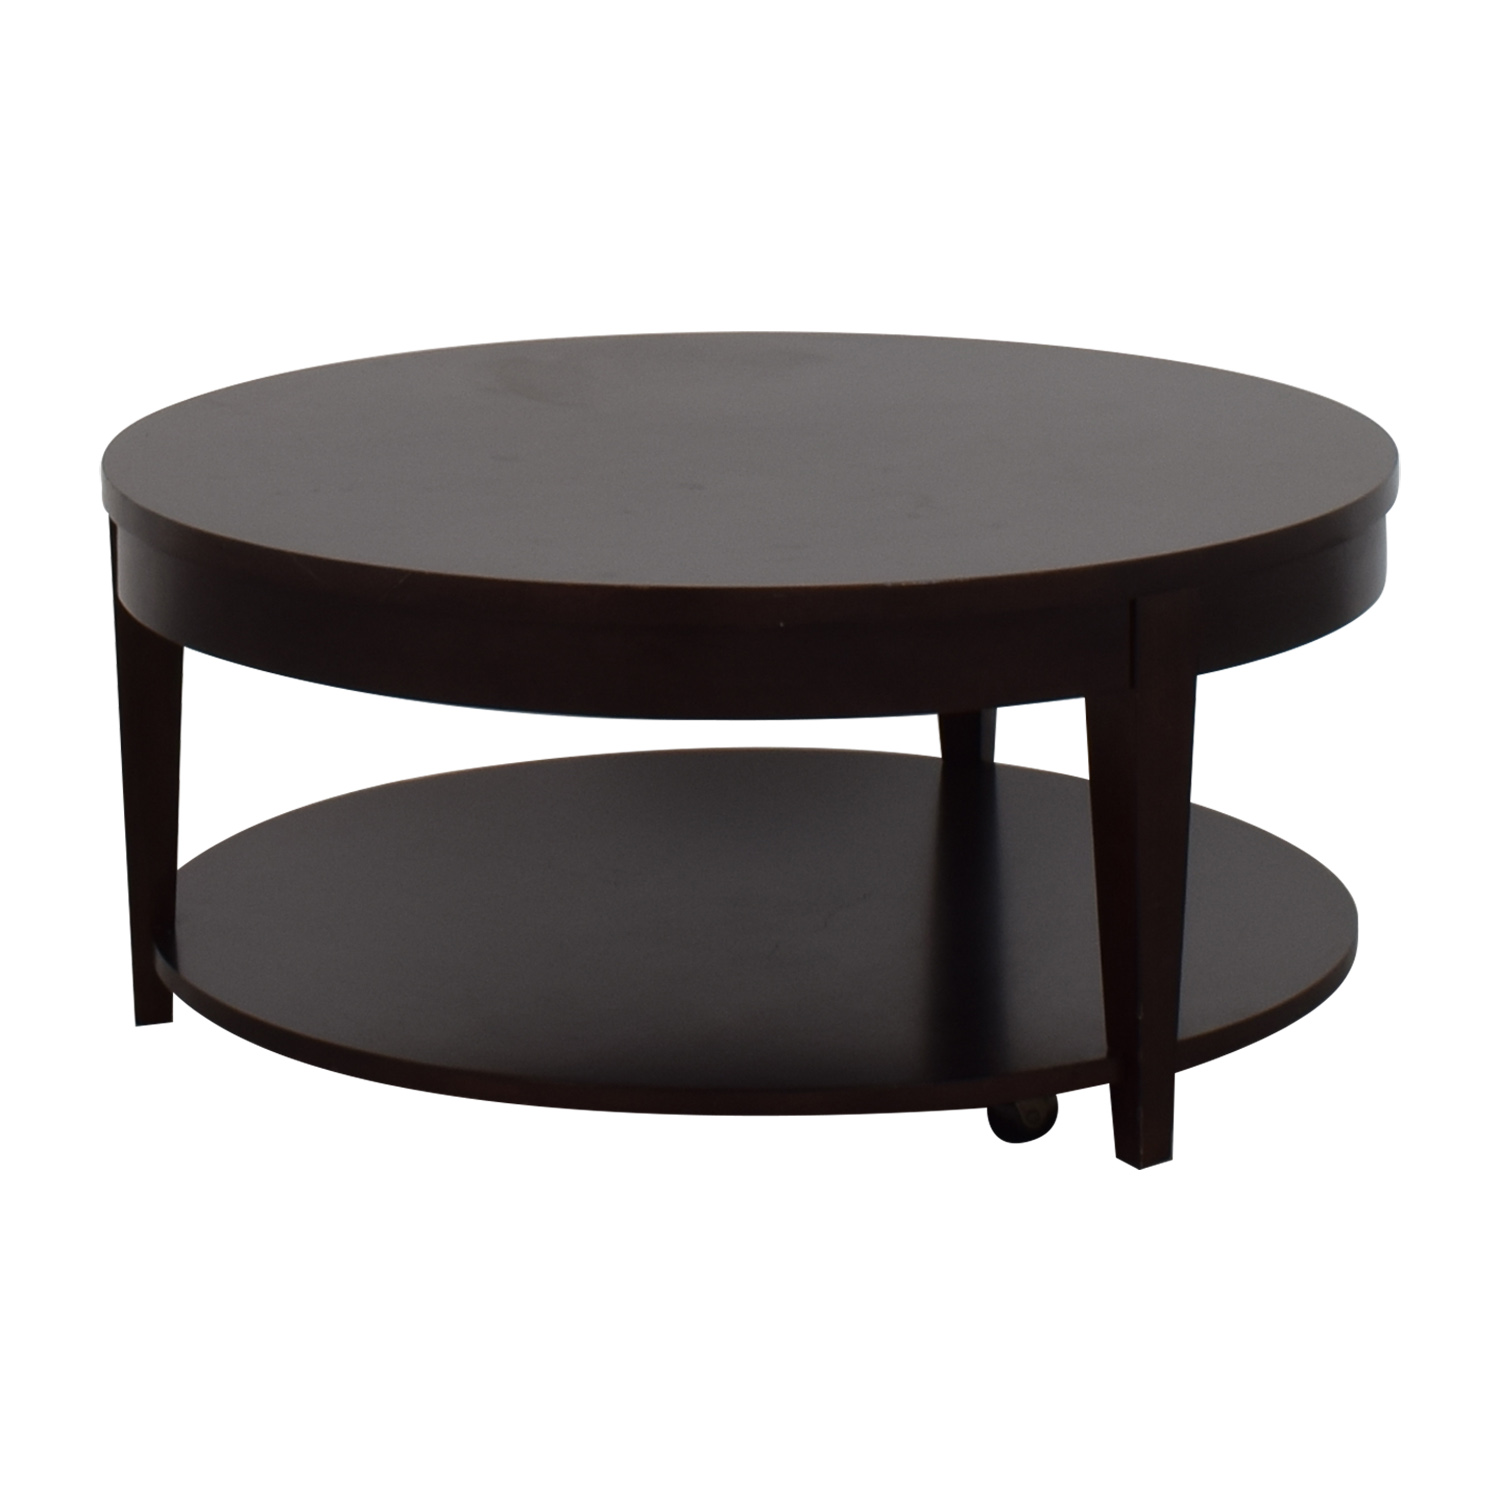 Macys Macys Modern Rolling Round Coffee Table Brown